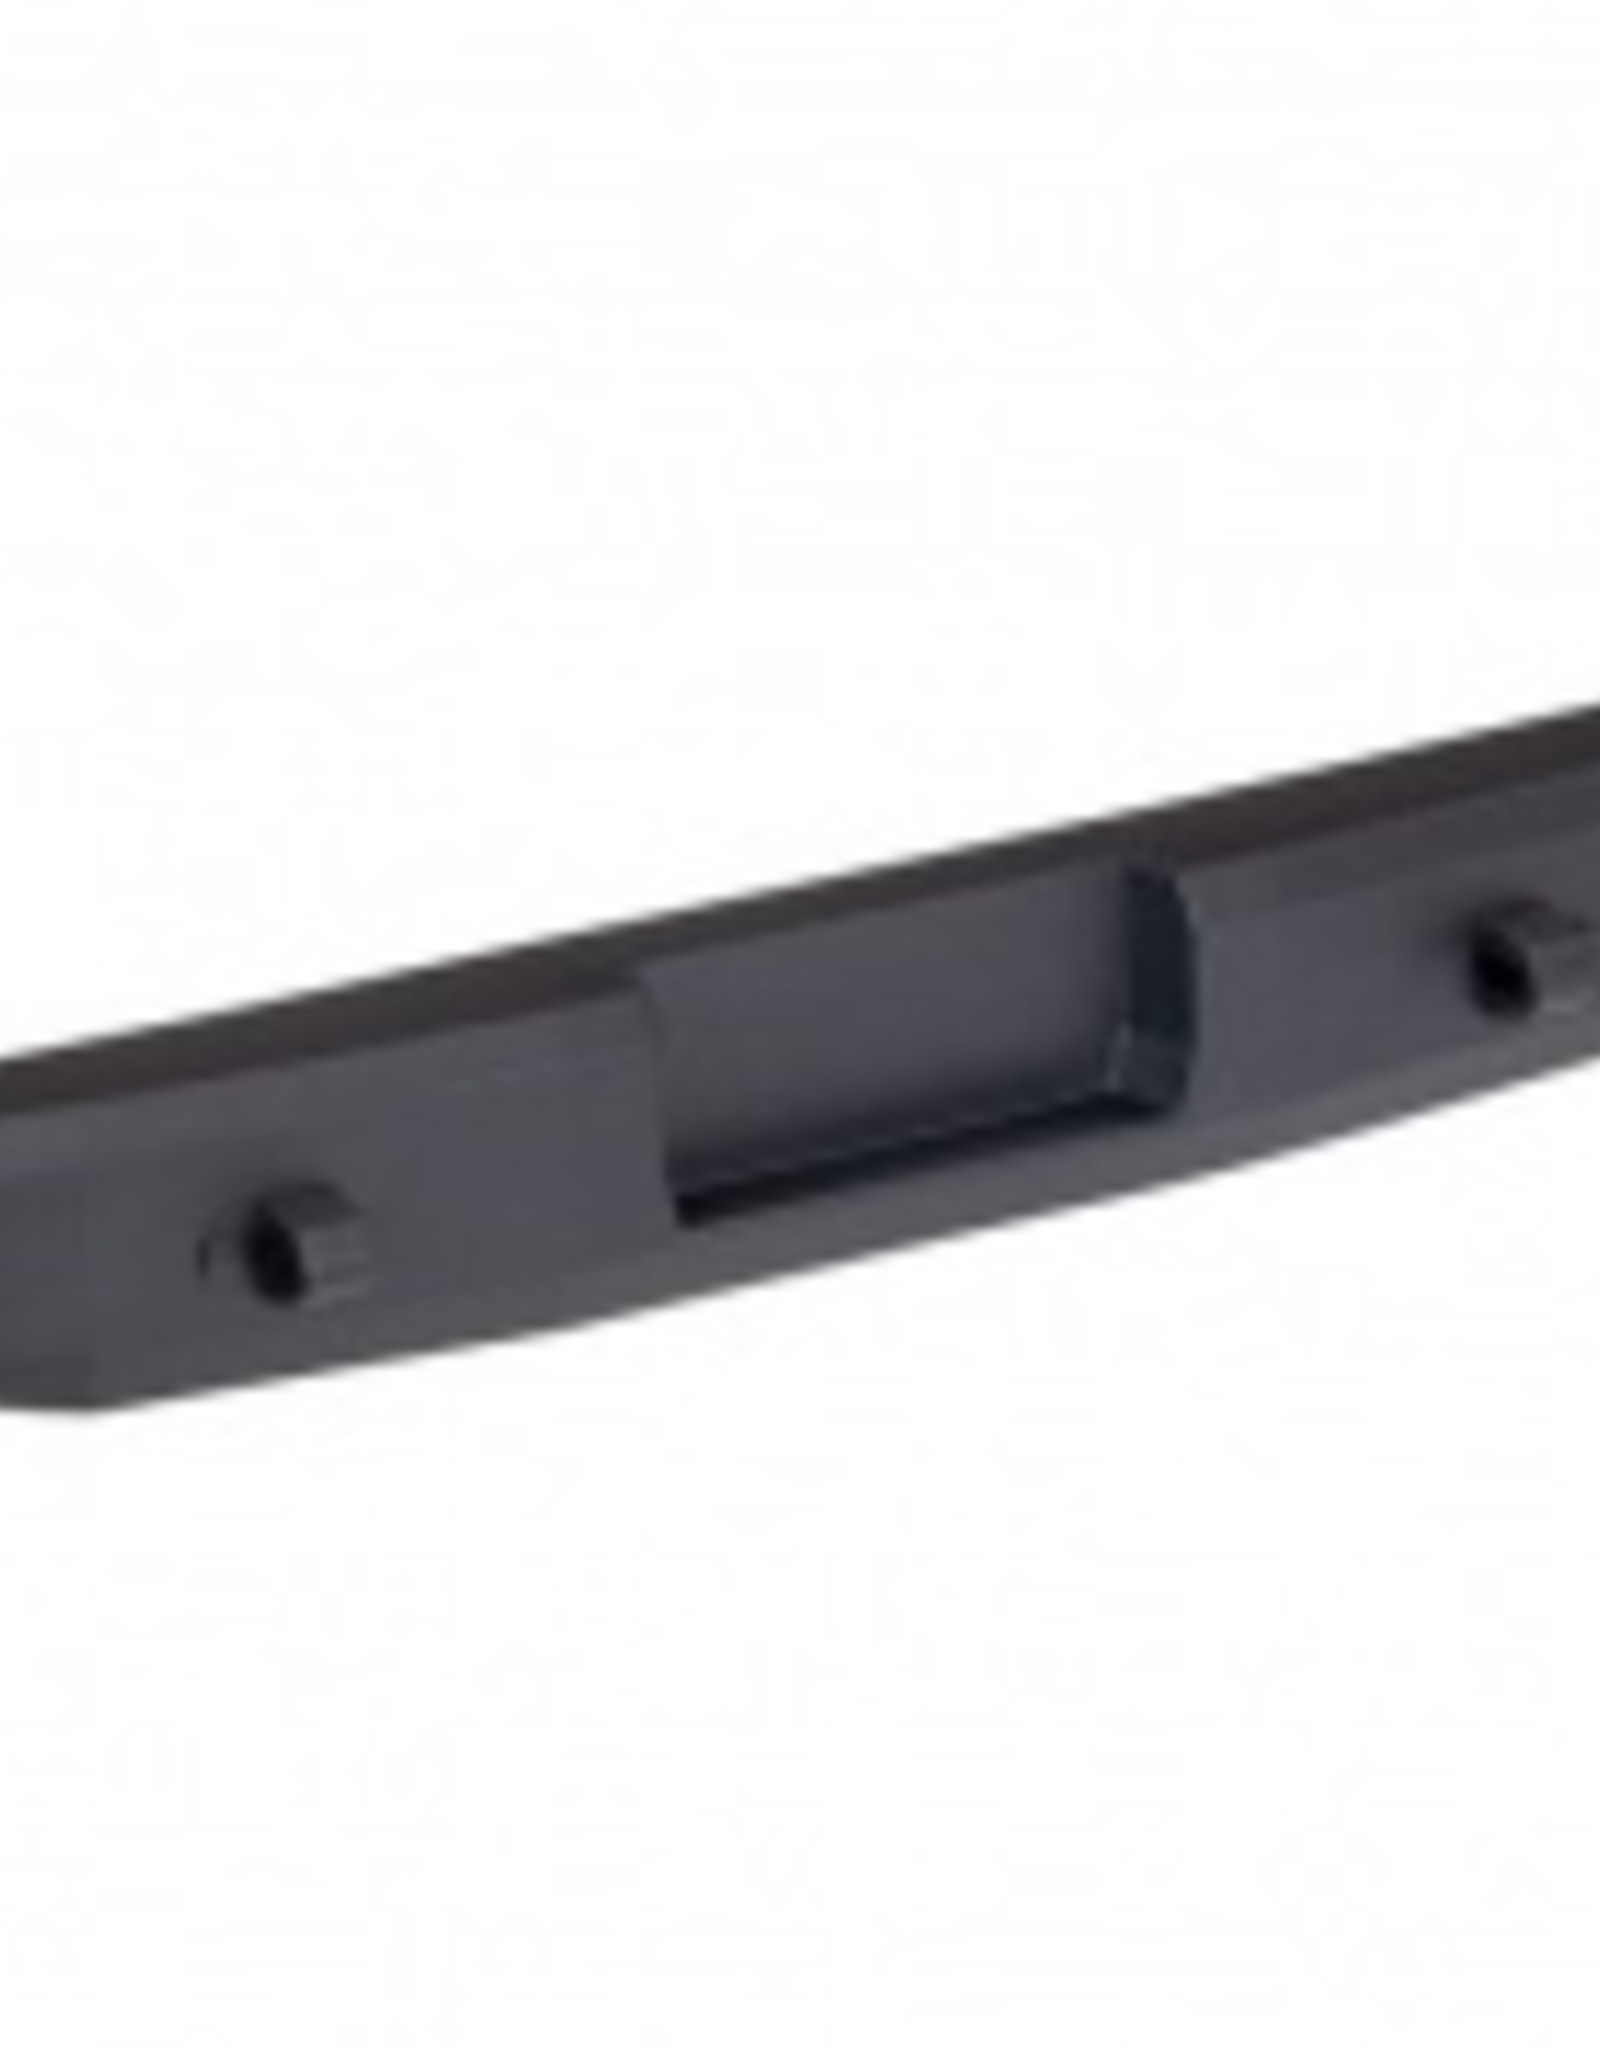 Traxxas Traxxas TRX Bumper, rear (176mm wide)